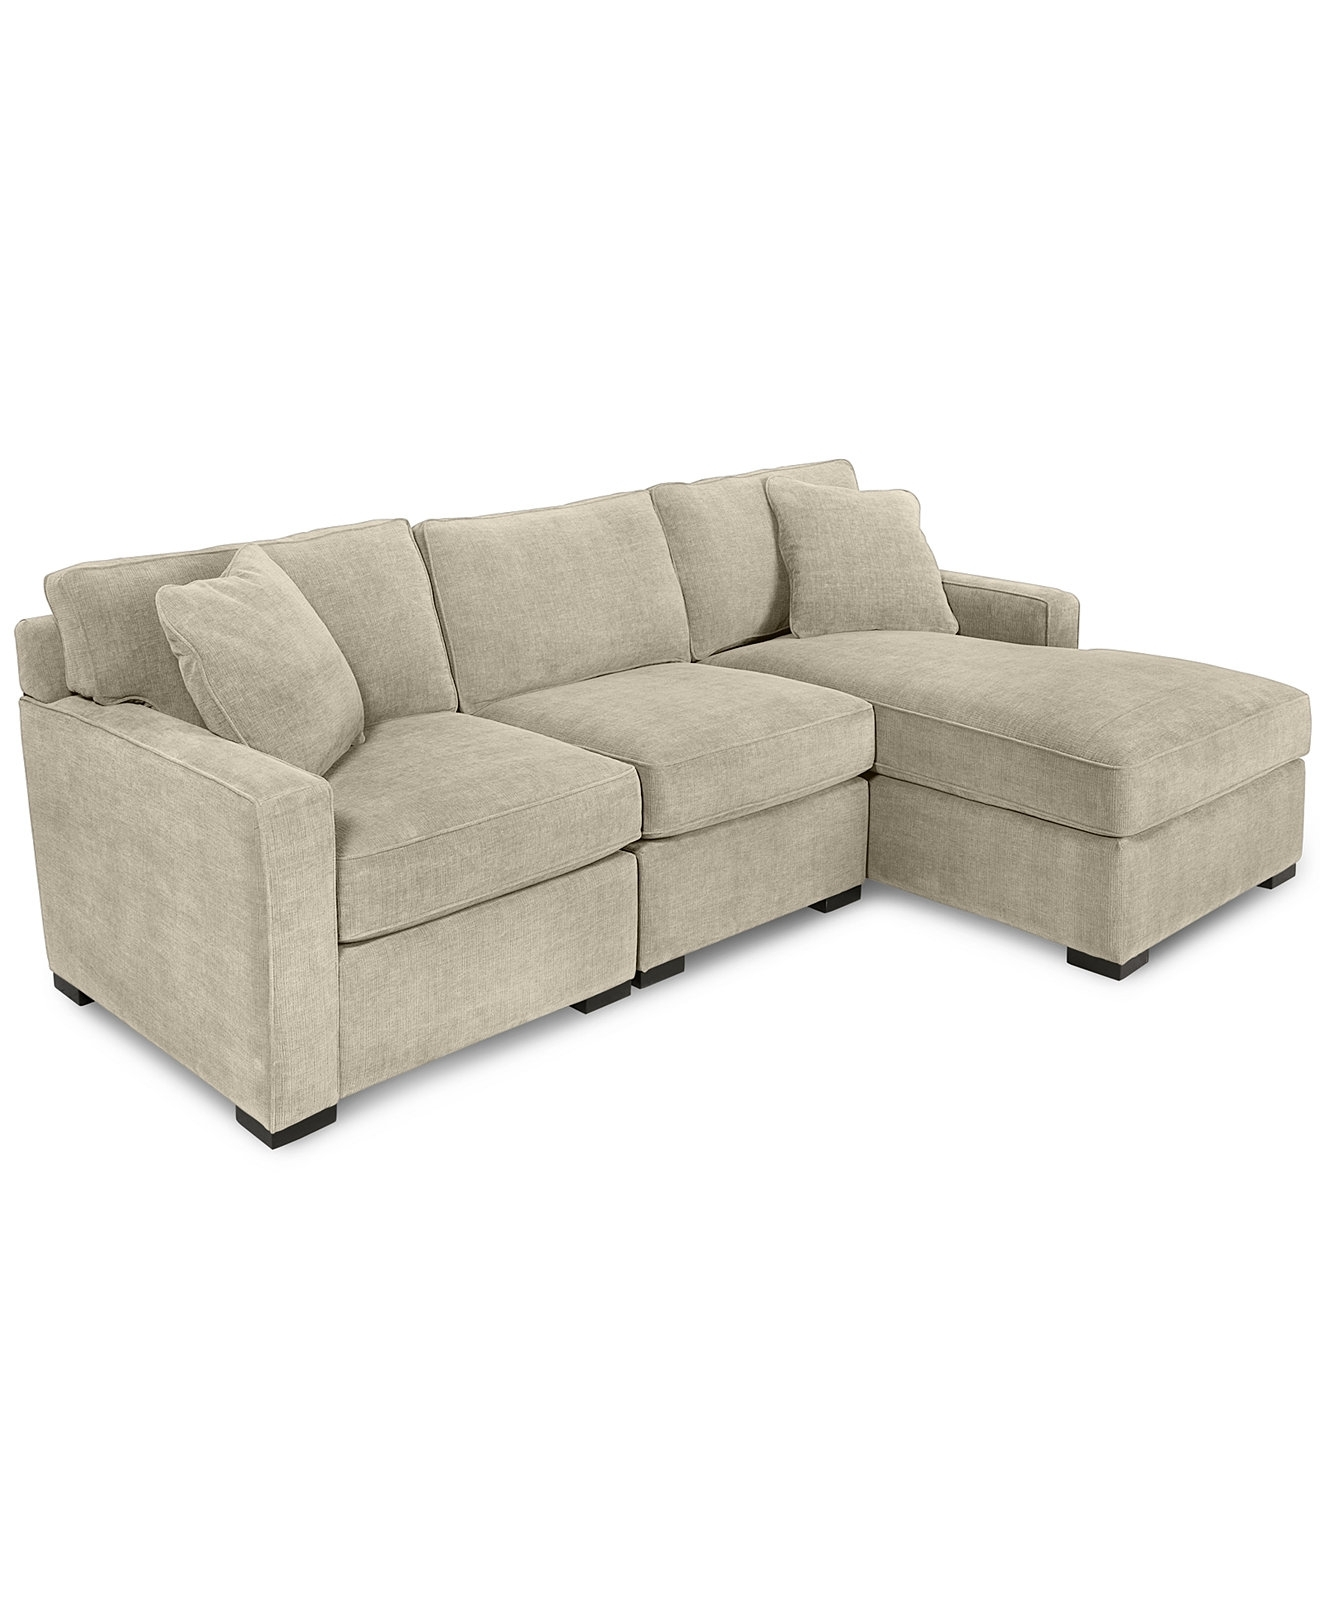 Radley 3 Piece Fabric Chaise Sectional Sofa, Created For Macy's Intended For Kelowna Sectional Sofas (View 9 of 10)